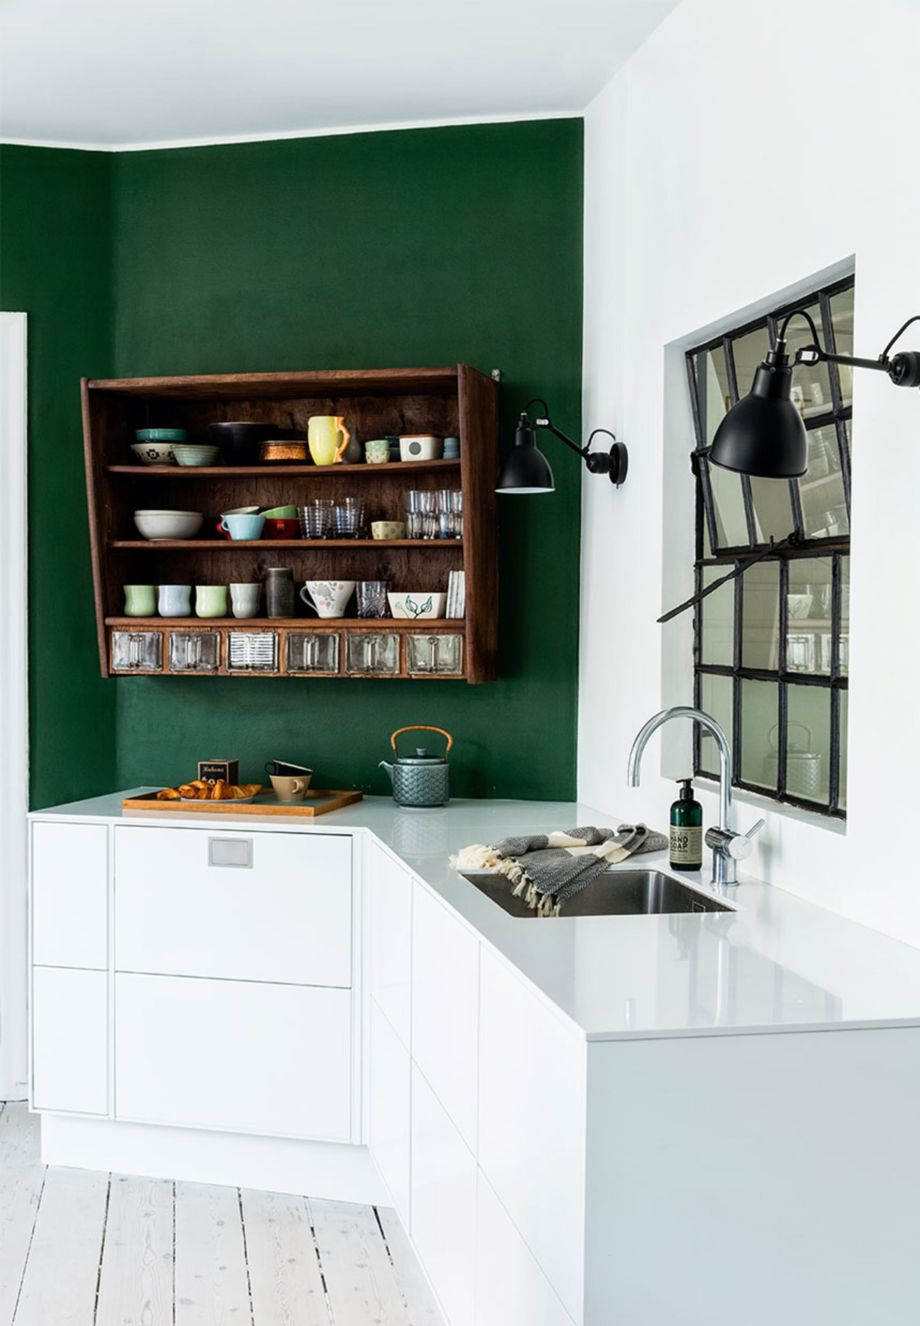 Kitchens design ideas with green walls 10